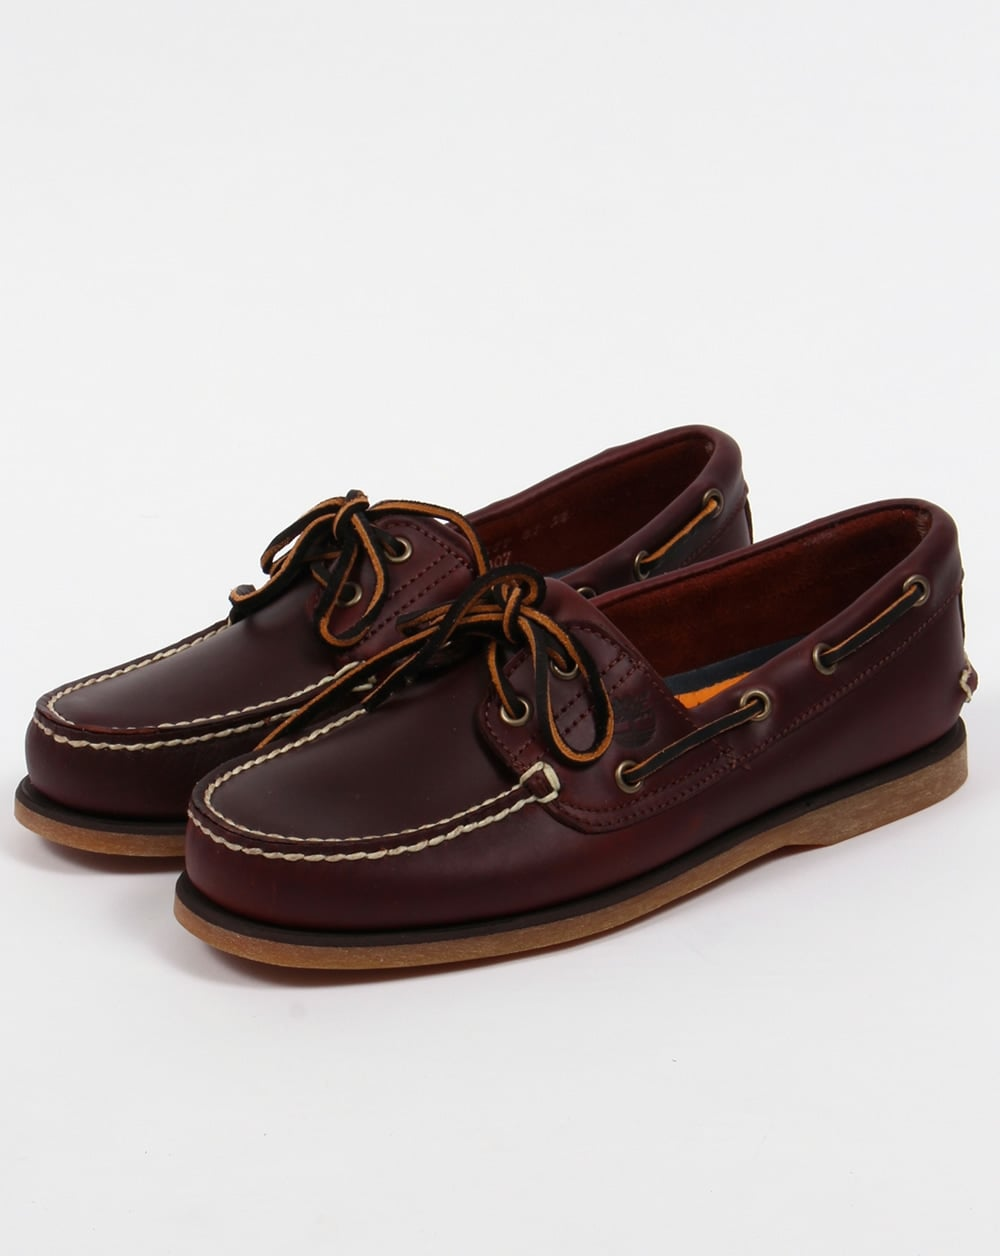 Timberland Boat Shoes Mens Uk